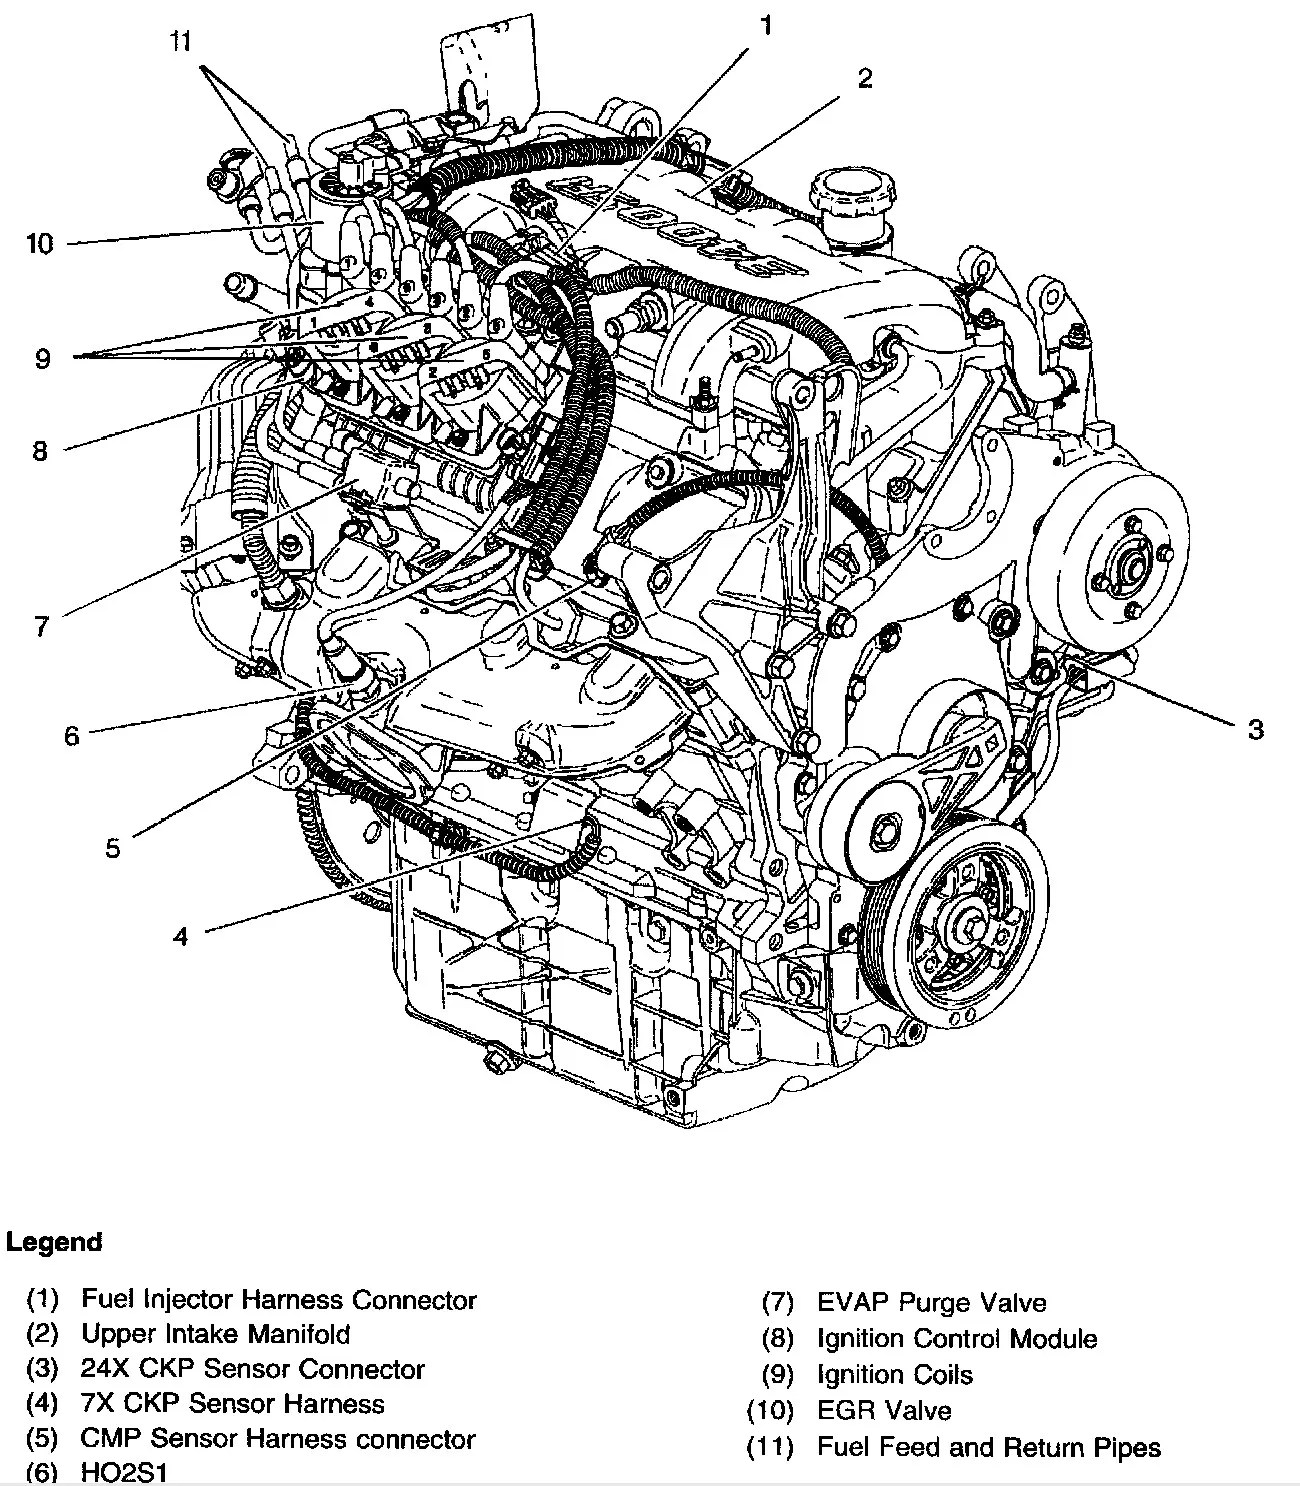 Diagram Of 3800 Pontiac Engine | Wiring Diagrams Post narrate | Chevy 350 Engine Schematic |  | wiring diagram library